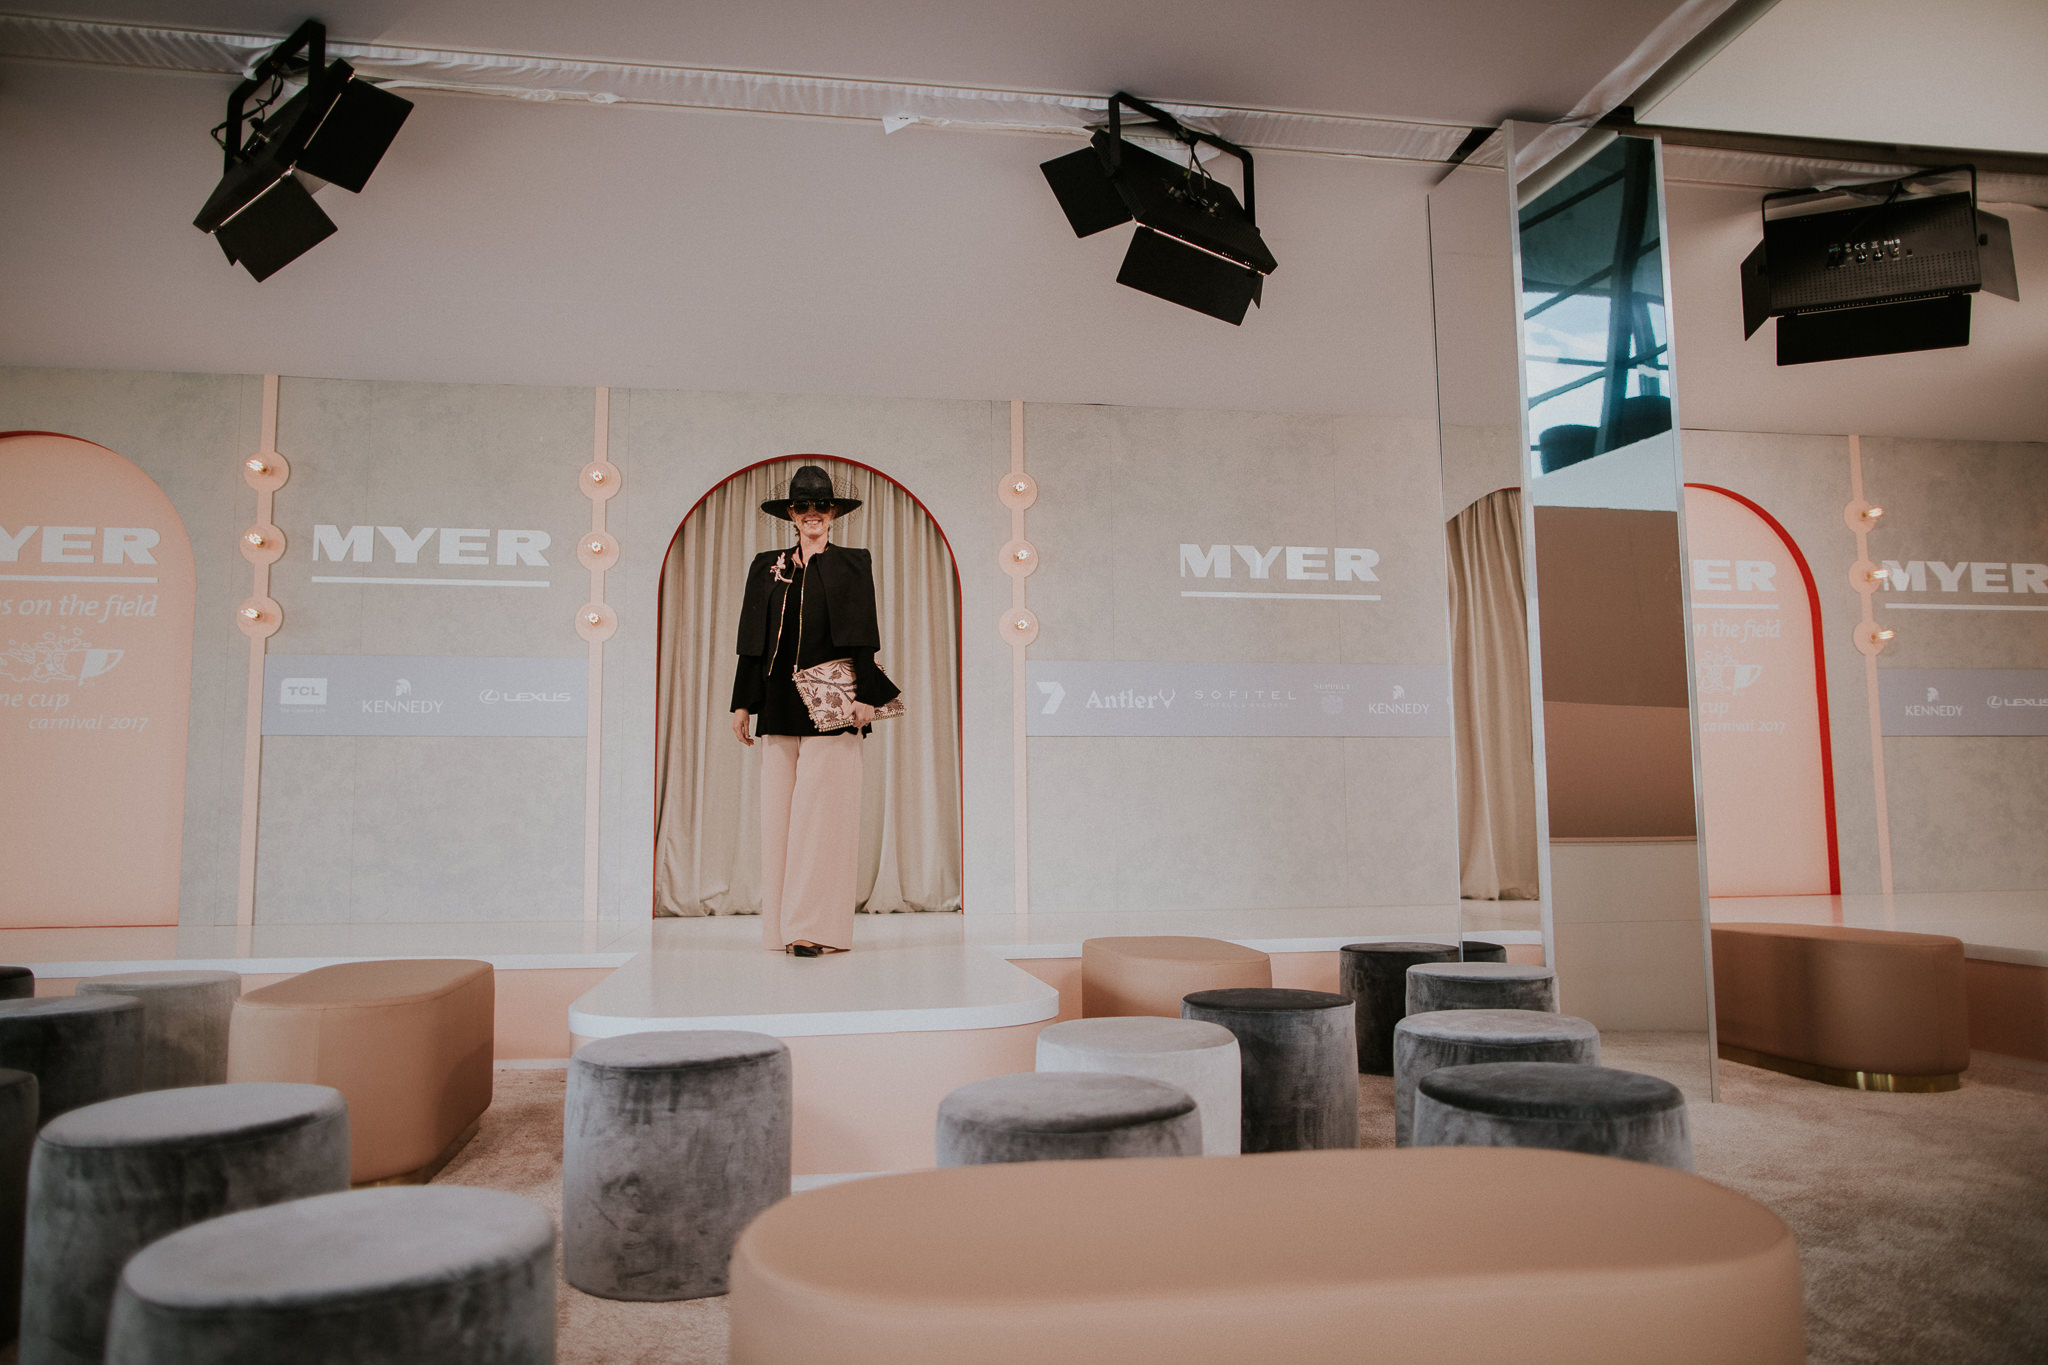 Myer Fashion Enclosure